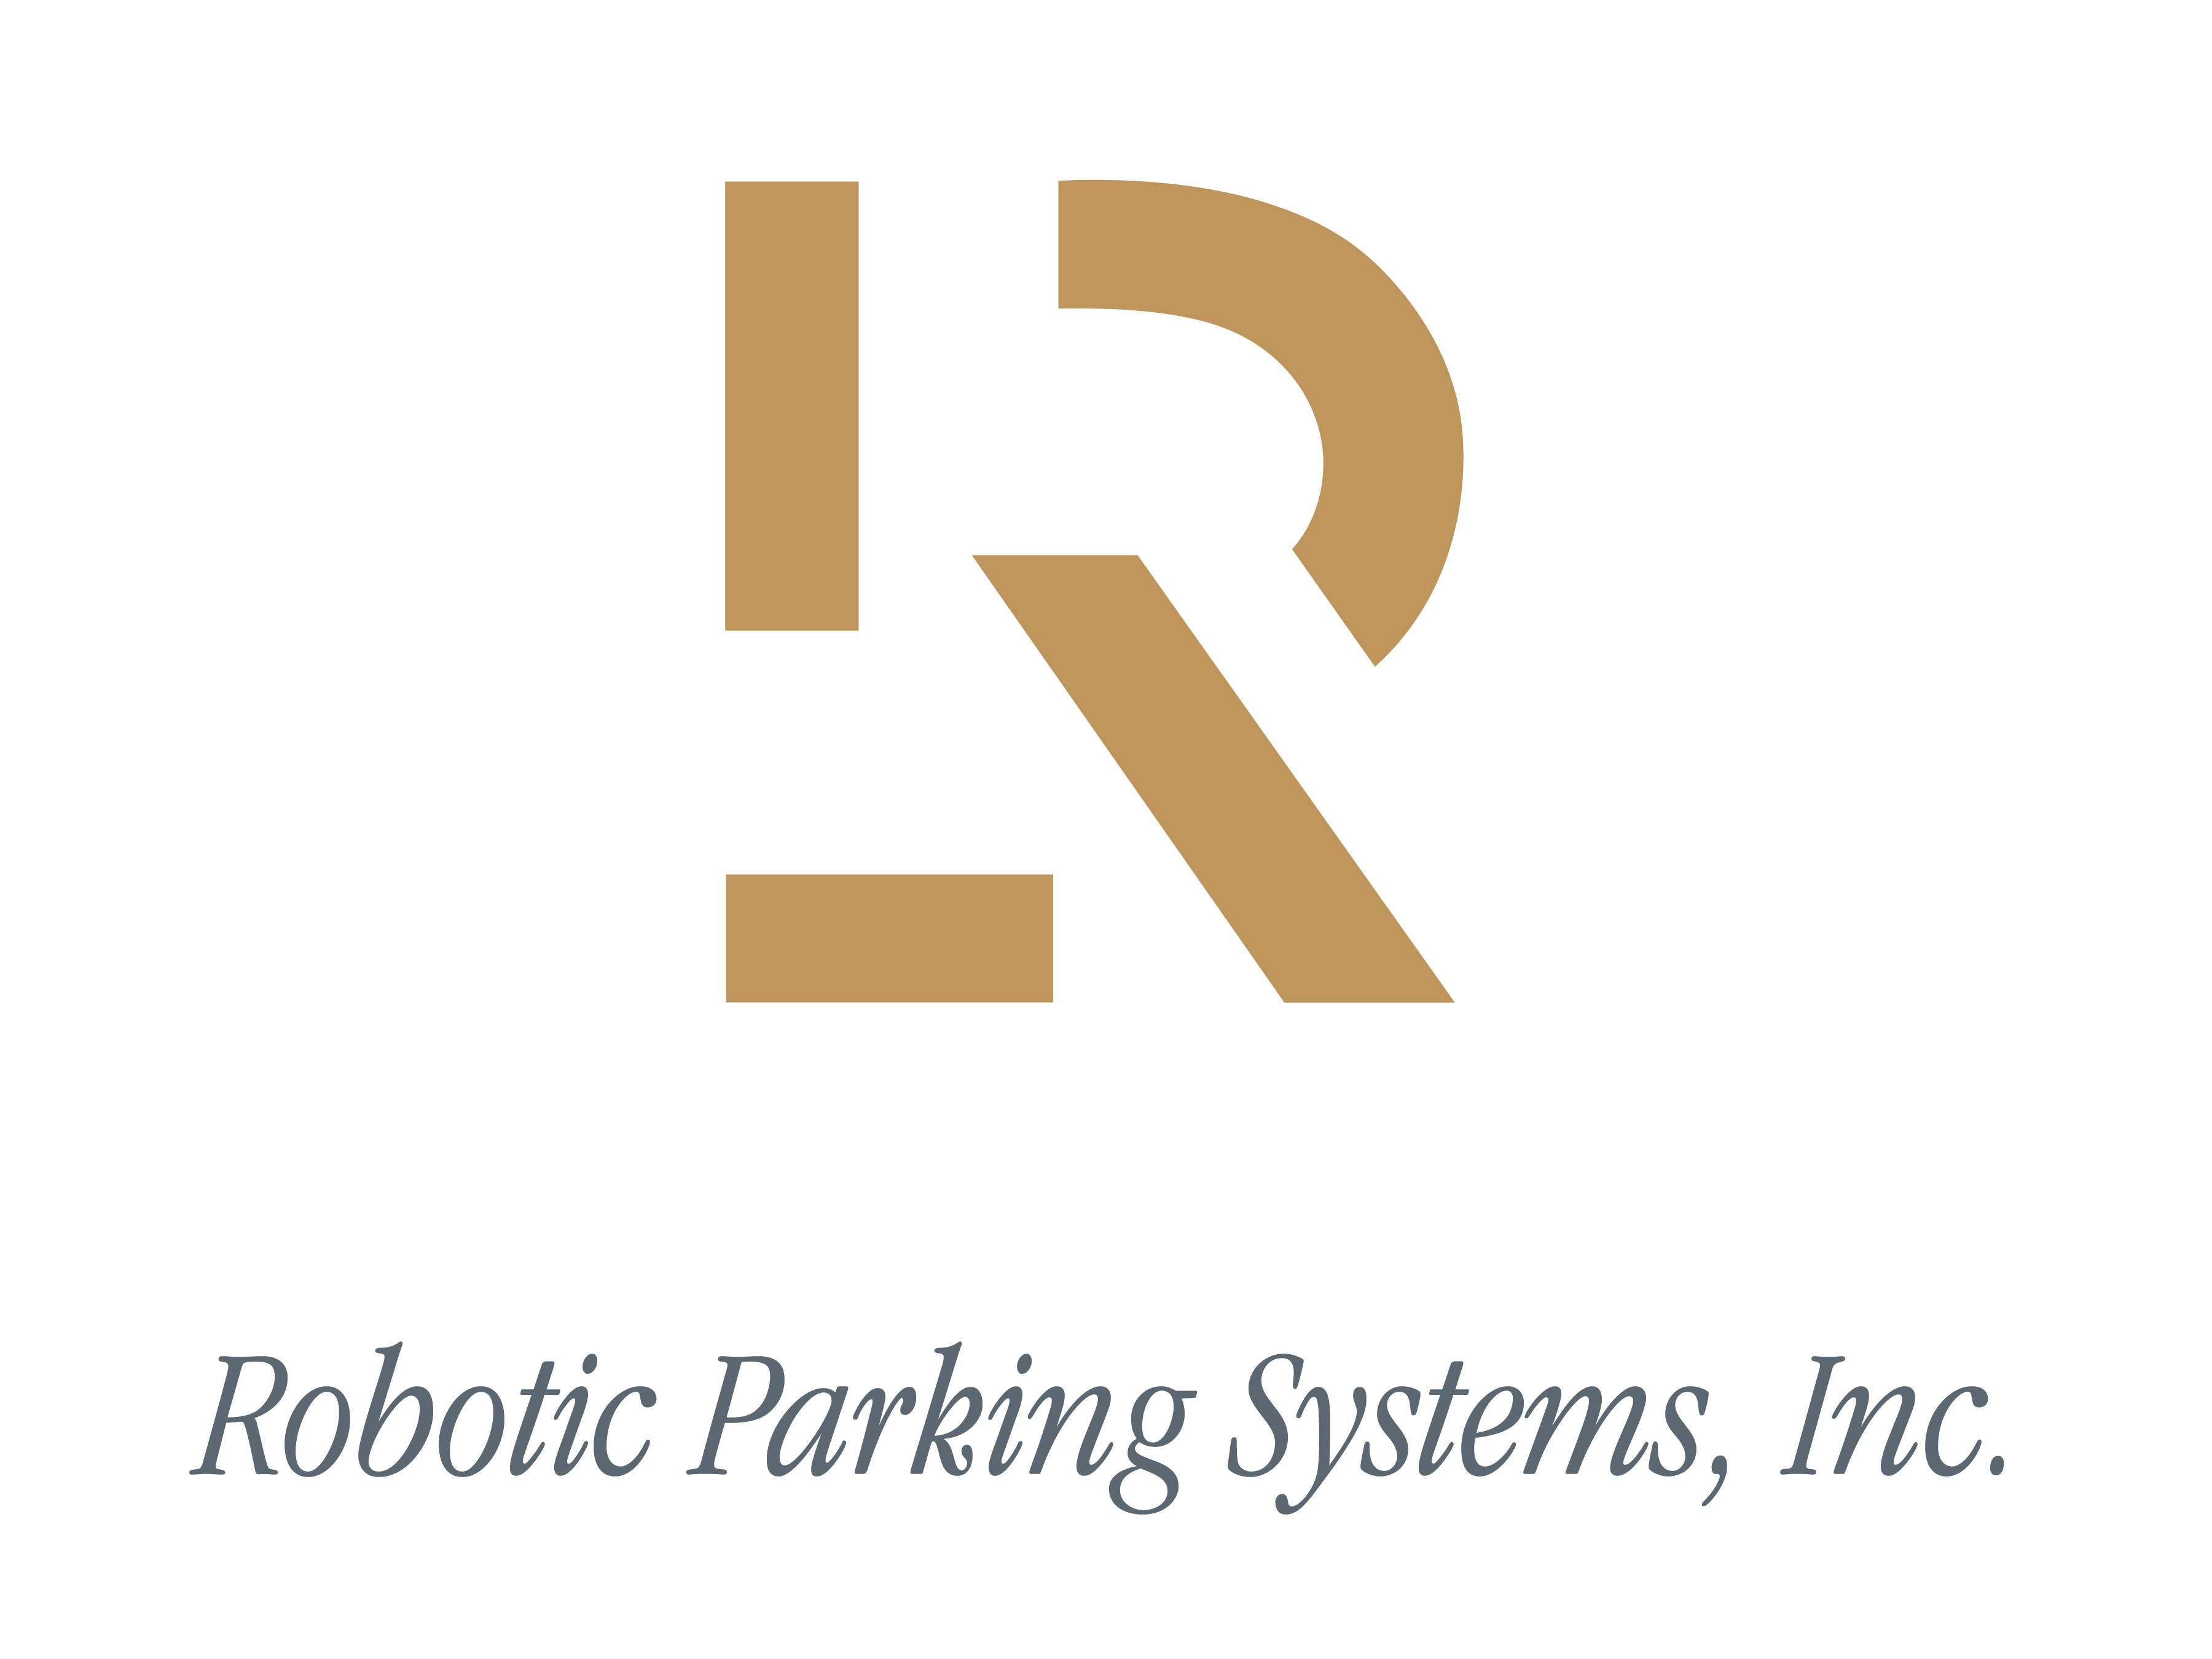 Robotic Parking Systems, Inc.